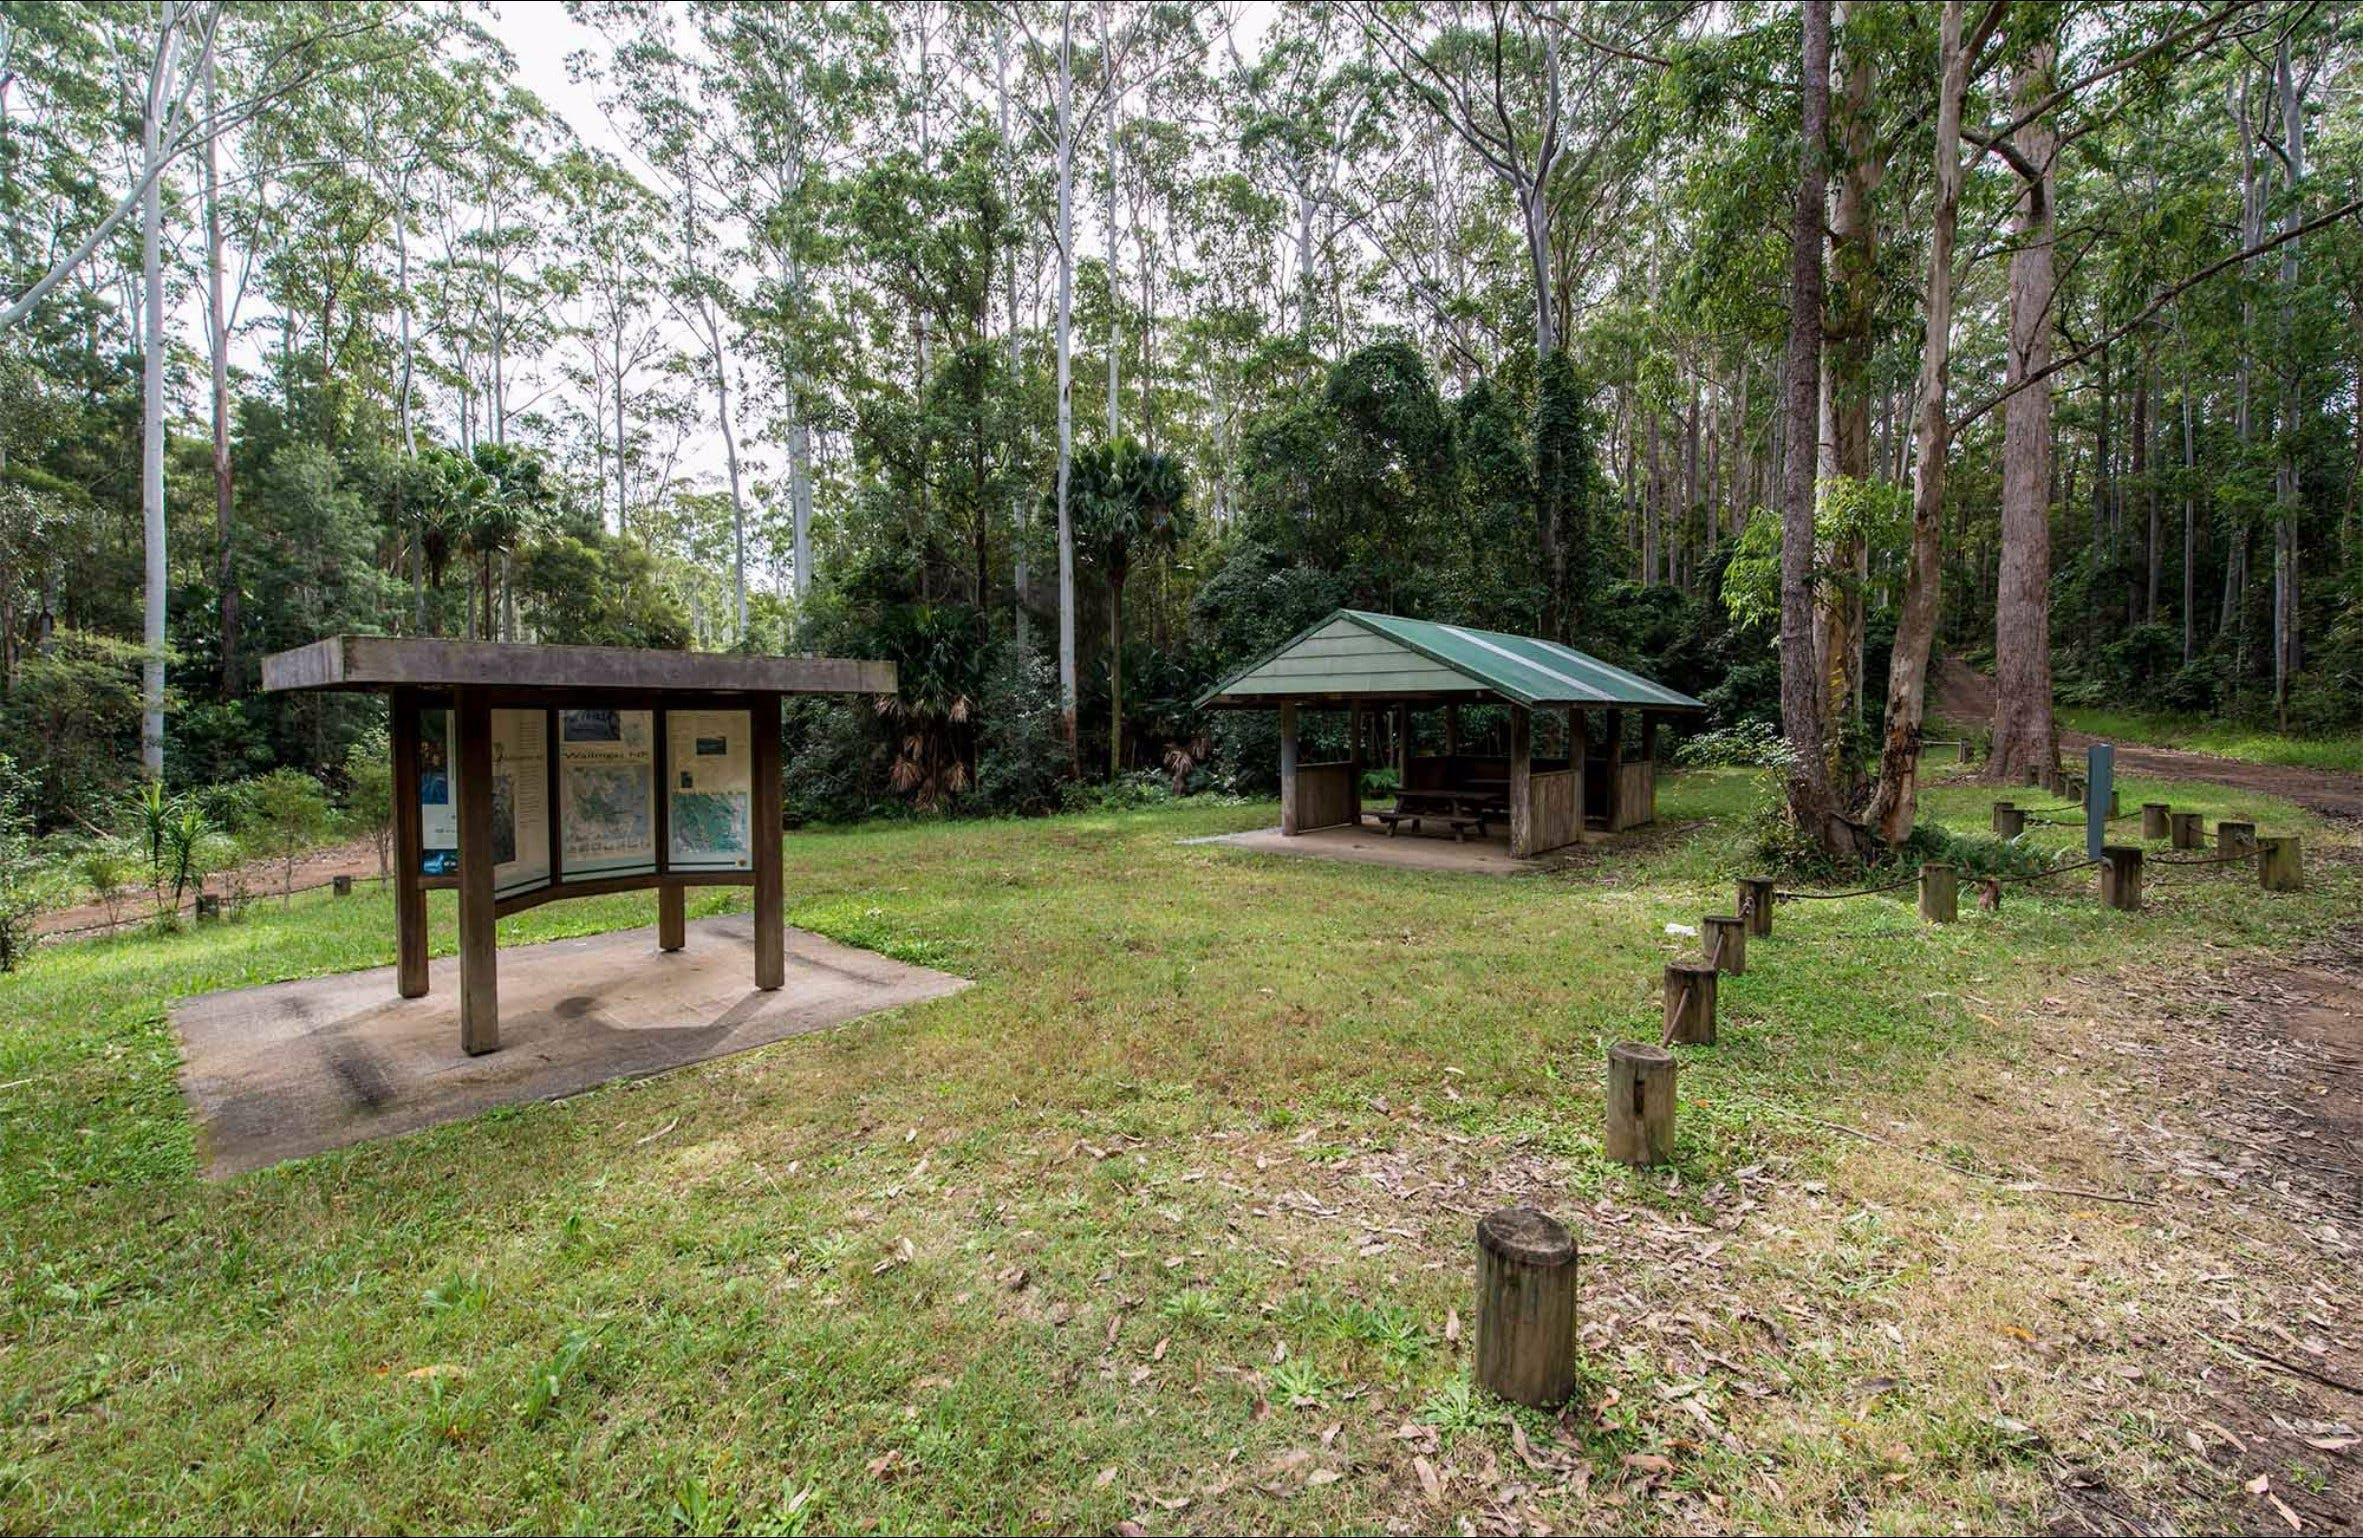 Gur-um-bee picnic area - Tourism Cairns